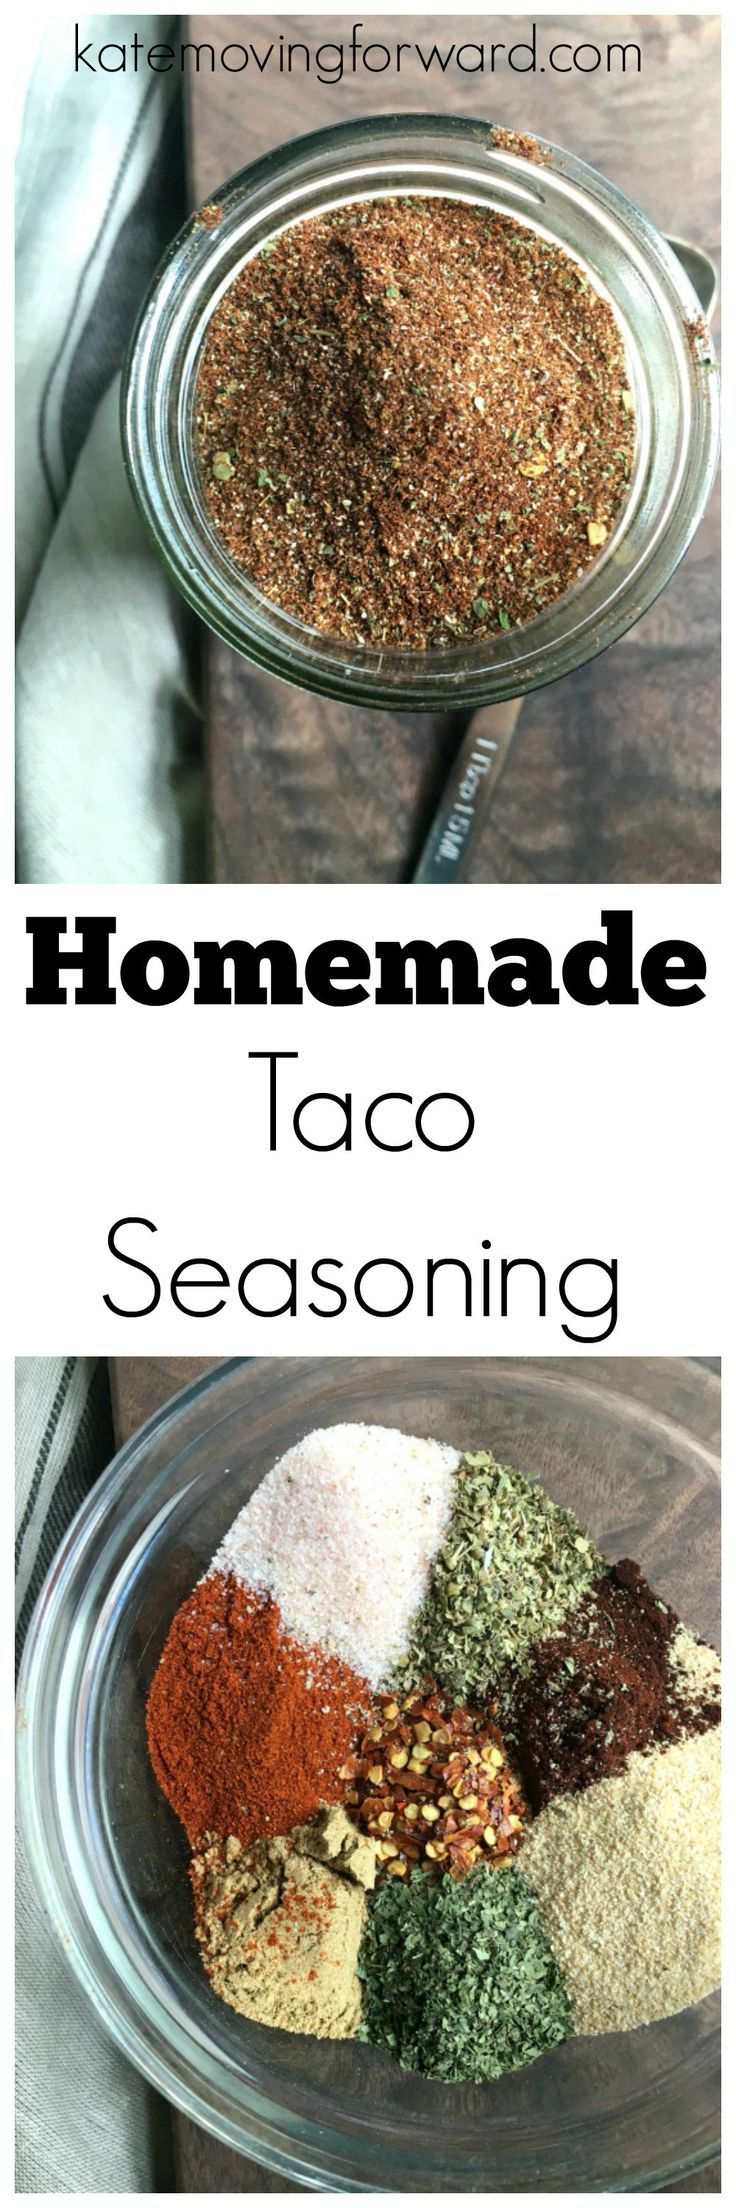 Homemade Taco Seasoning - Make your own DIY taco spice mix for tacos…